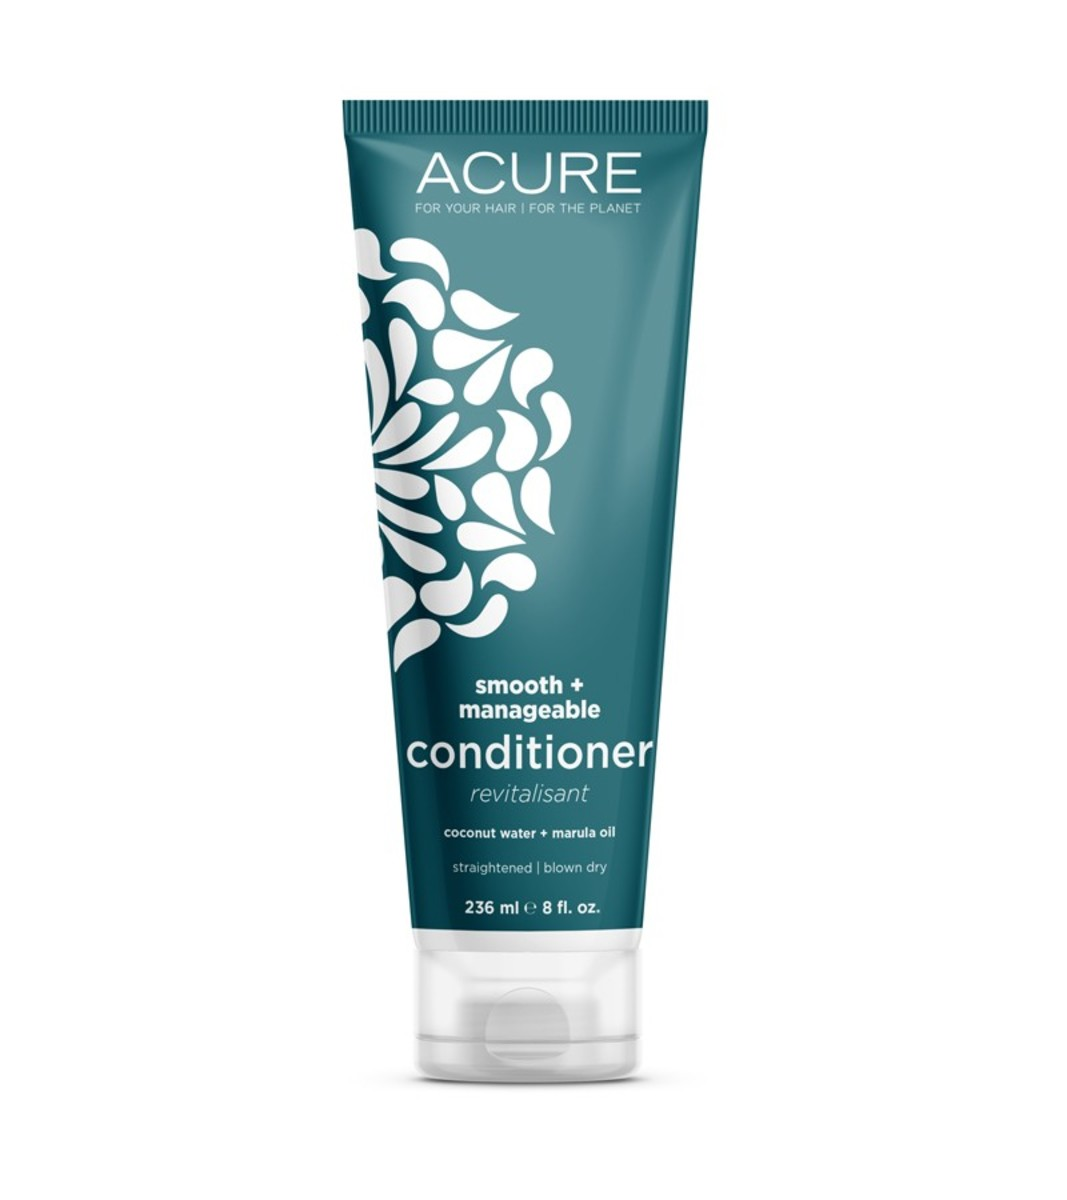 Acure Organics Smooth + Manageable Conditioner